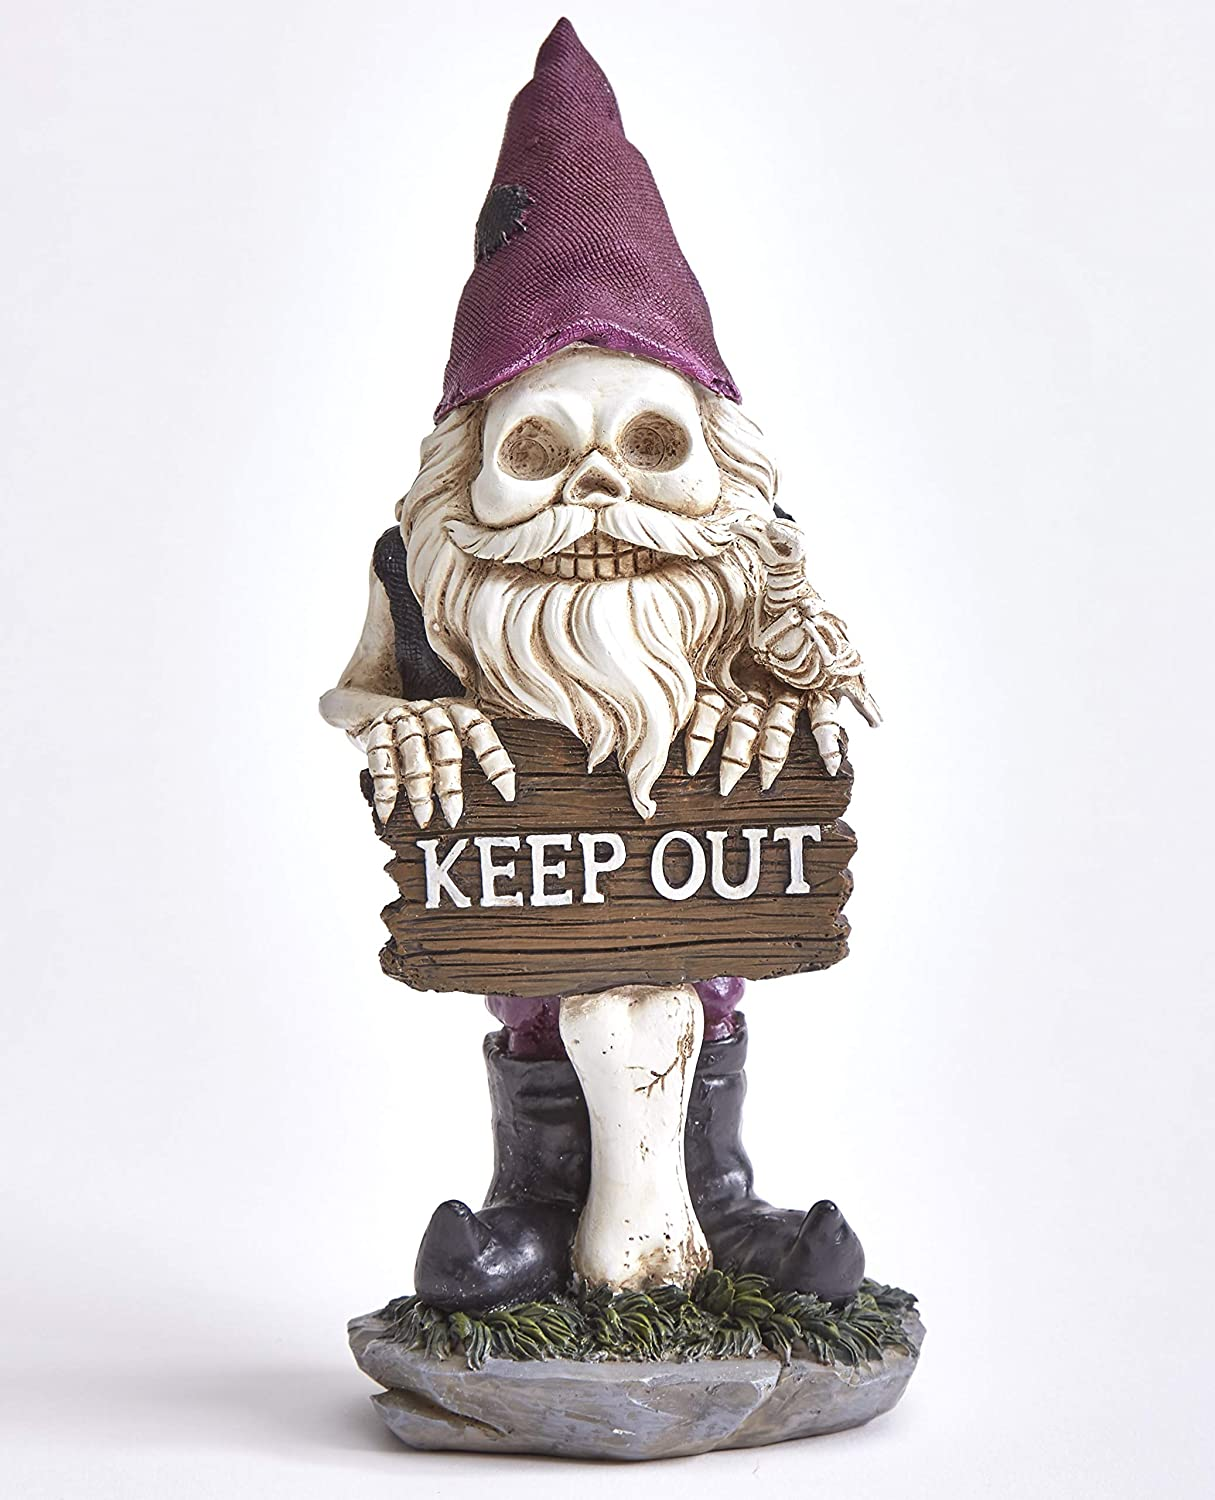 The Lakeside Collection Bearded Garden Skeleton Gnome with Keep Out Sign and Solid Color Hat